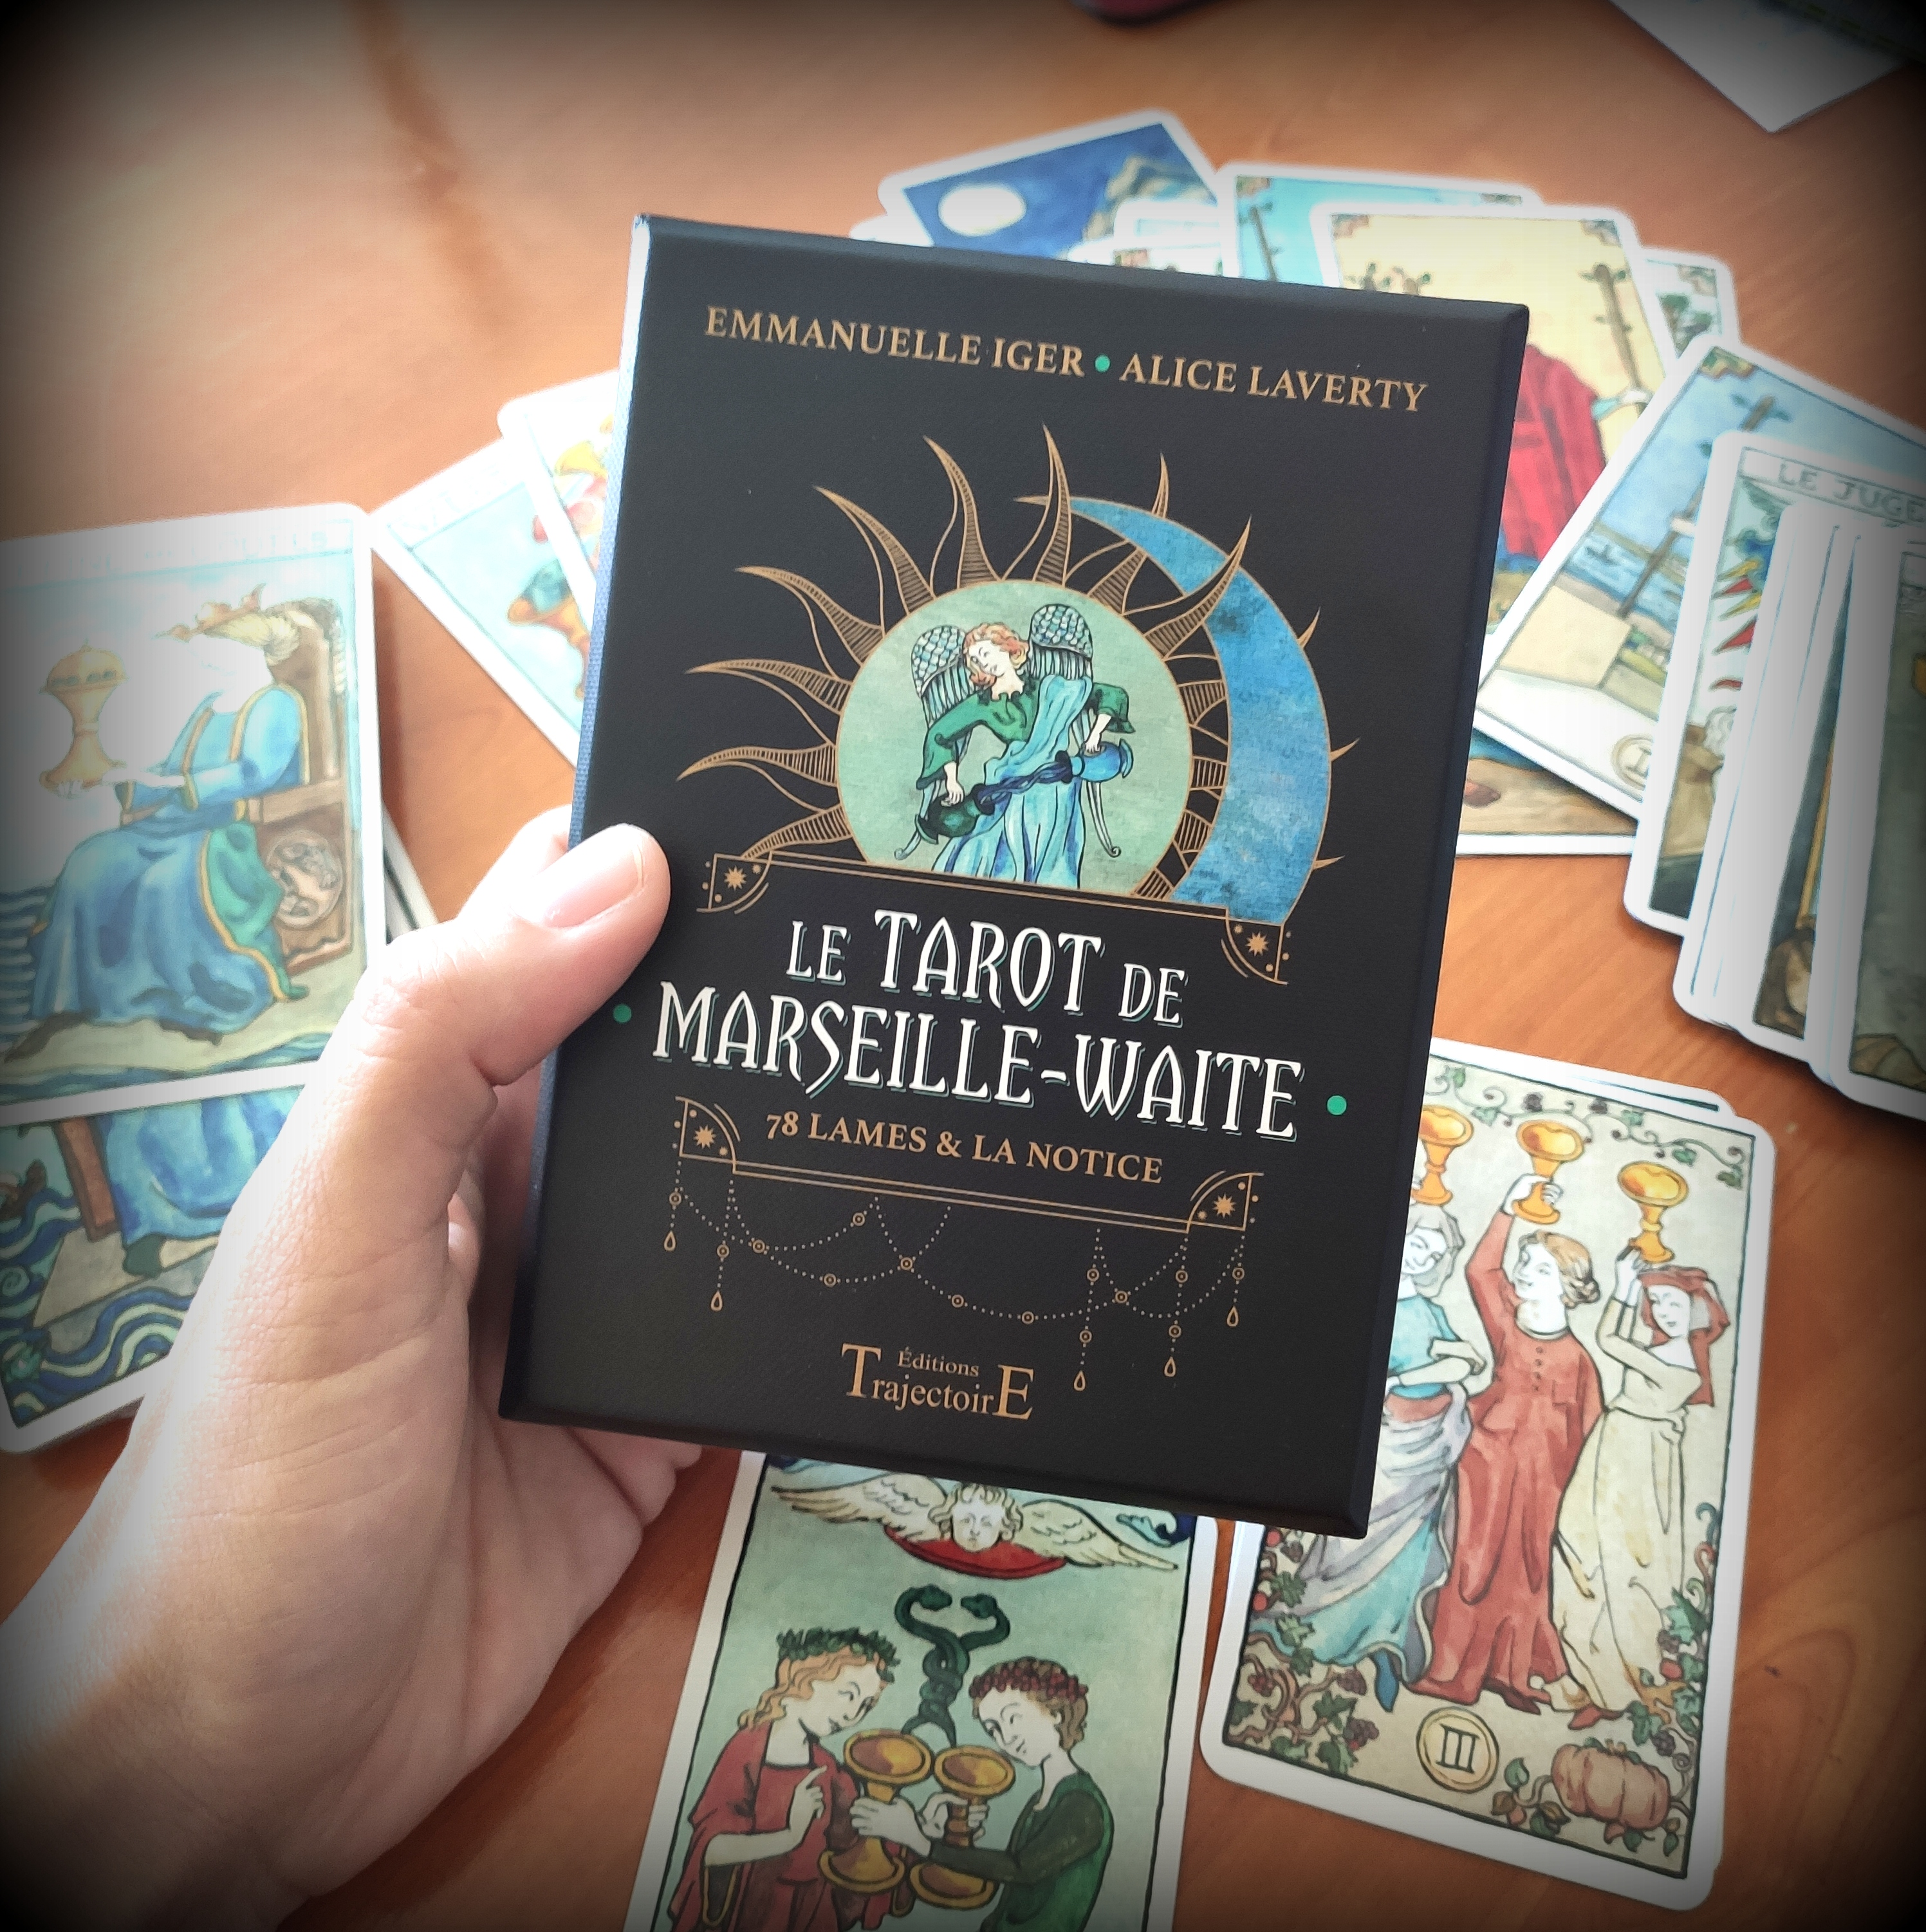 iger laverty tarot marseille waite